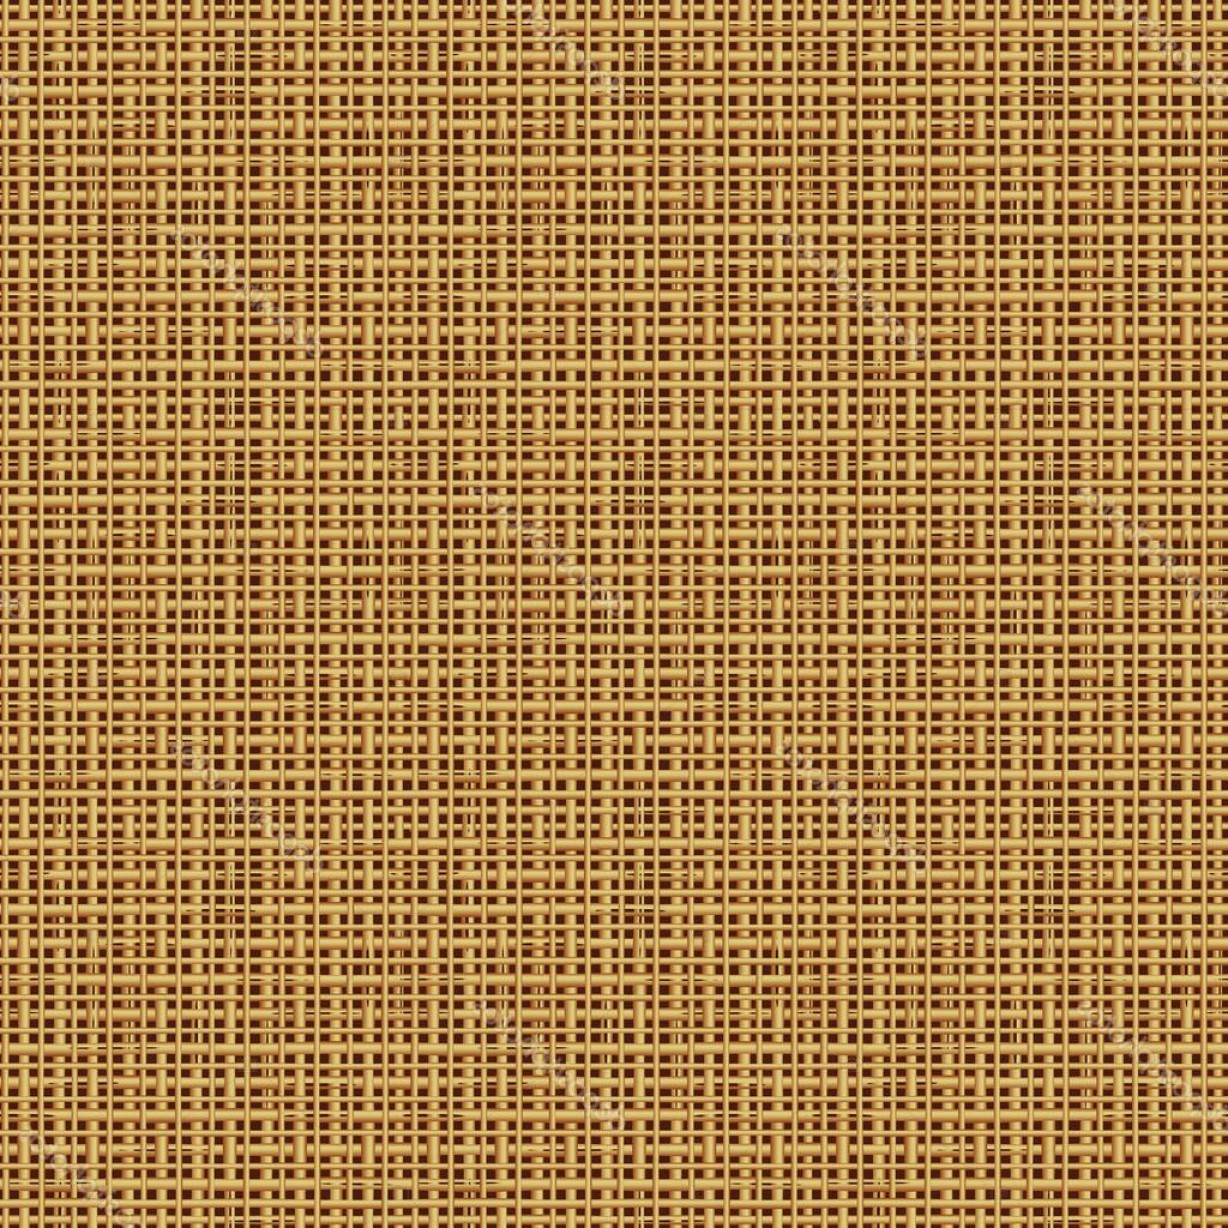 Brown Seamless Fabric Textures Burlap Texture Vector At Getdrawings Free For Personal Use